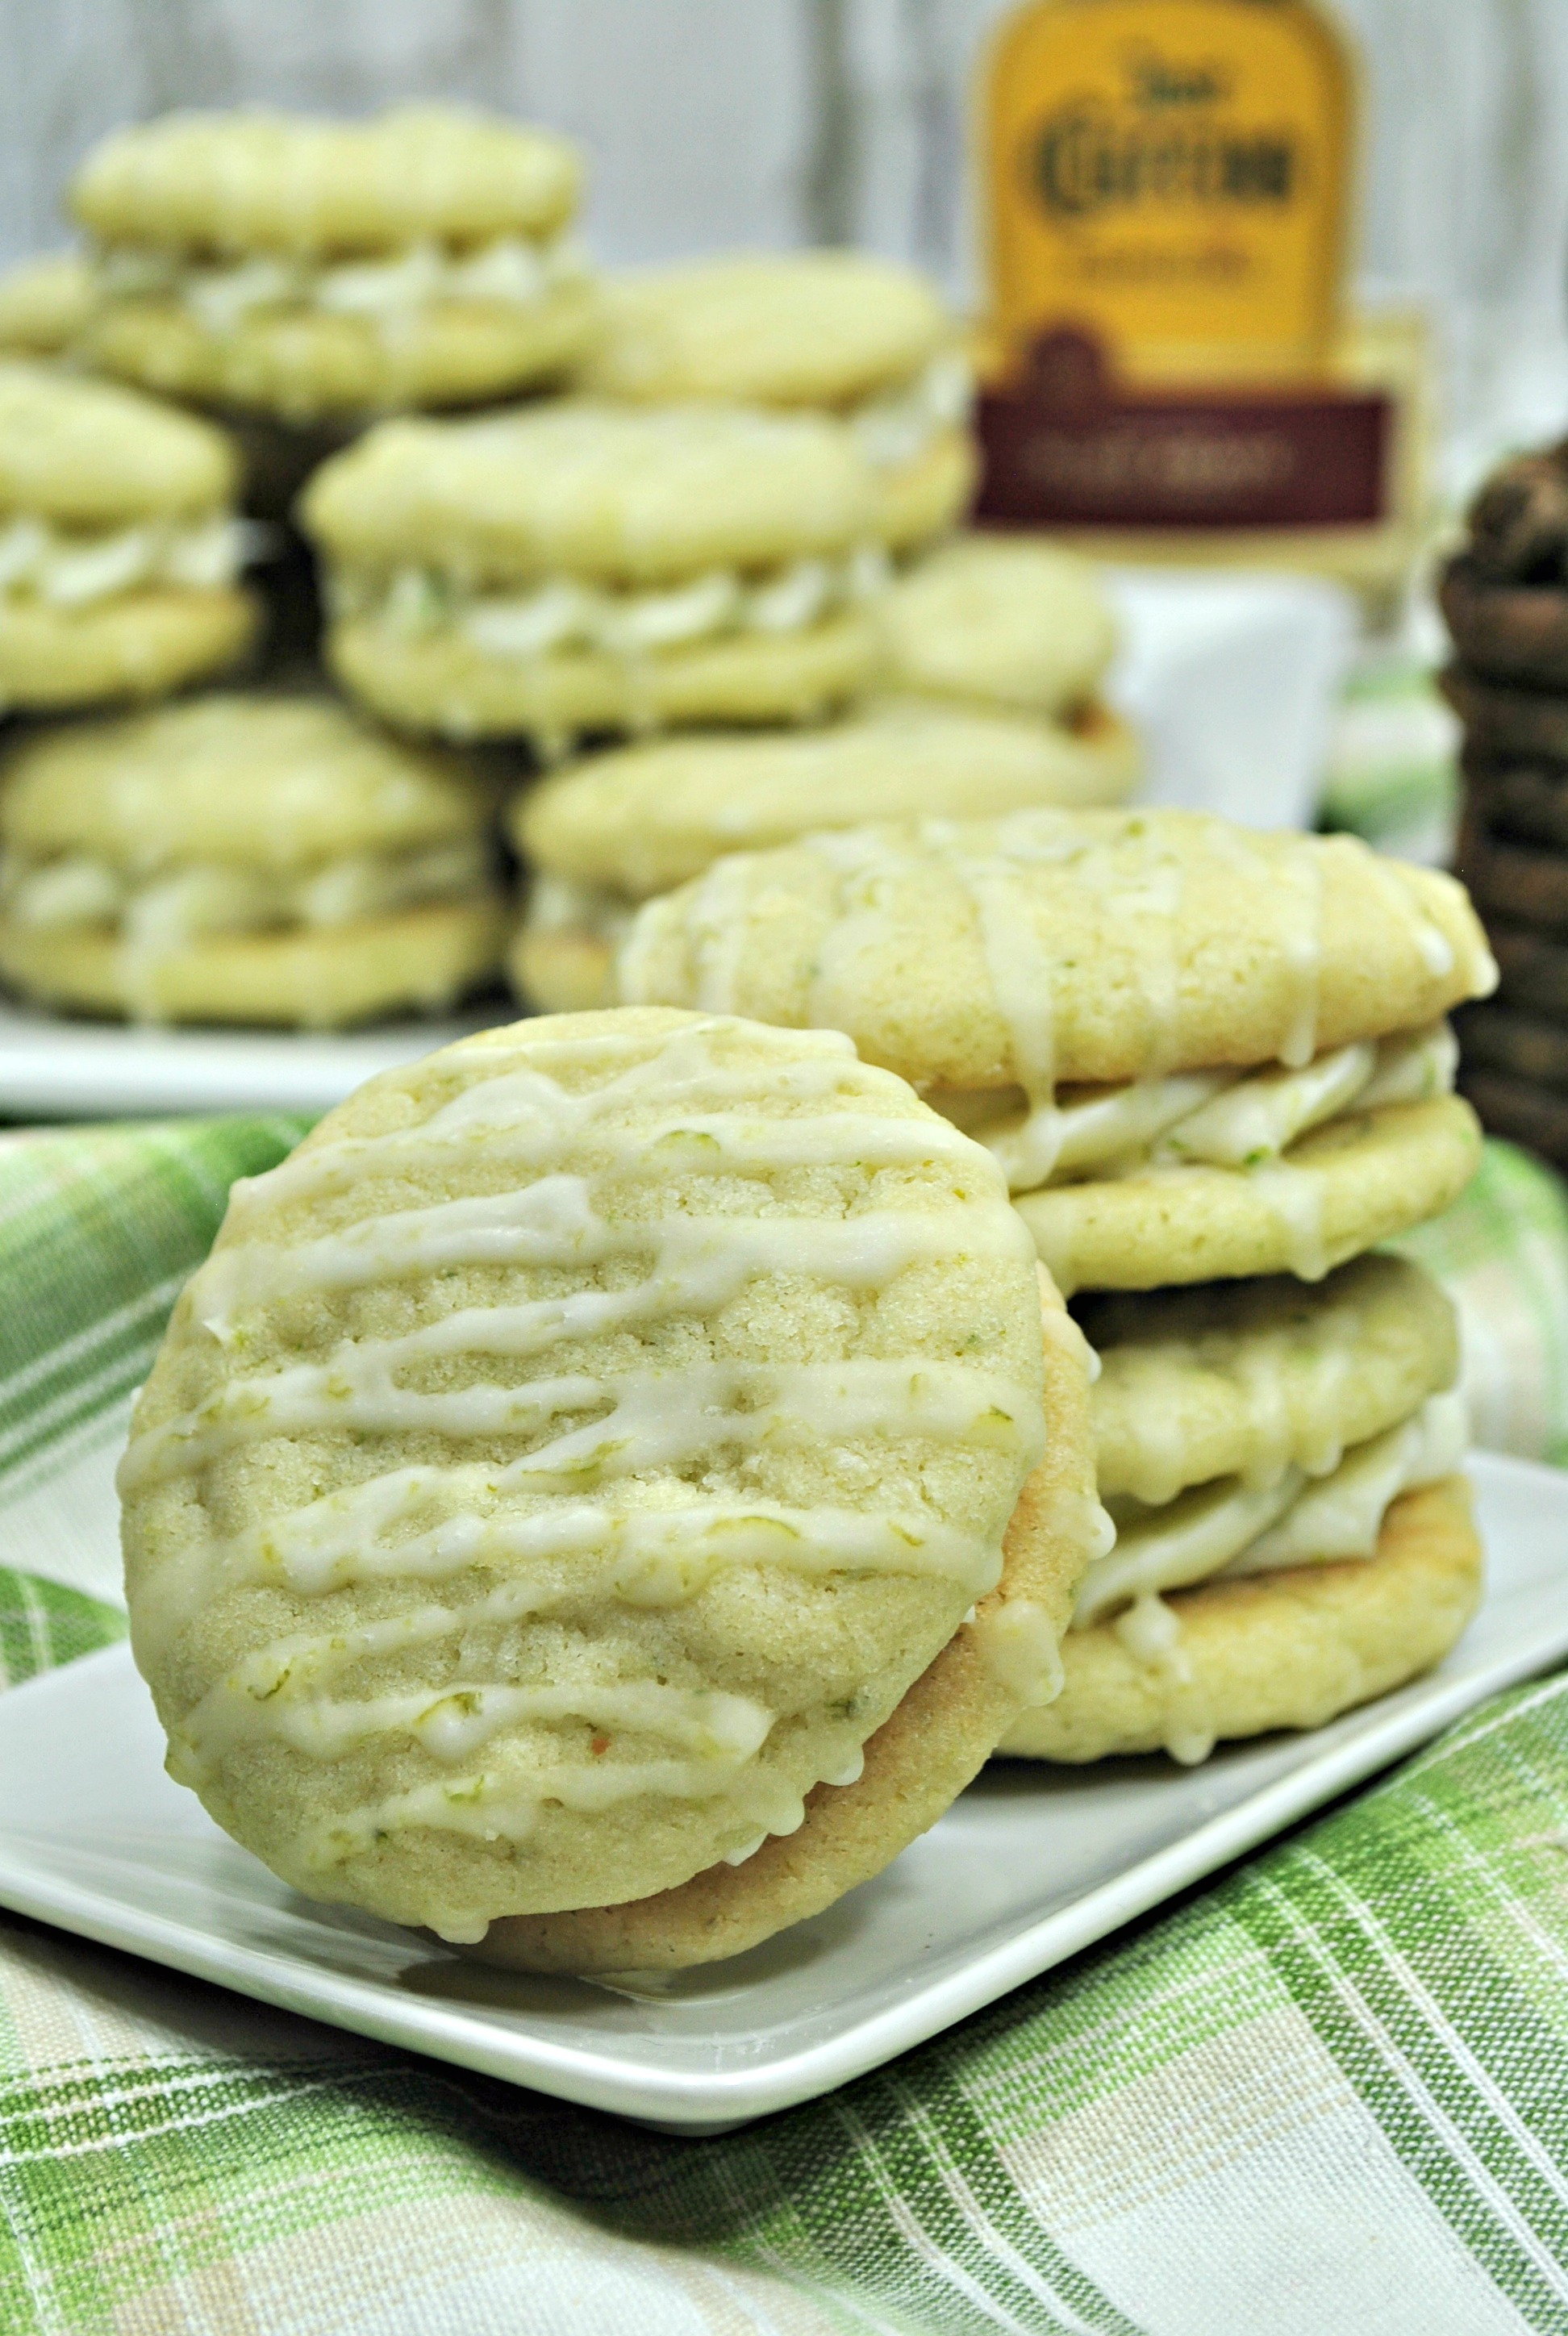 Tequila and Lime Margarita Cookies on Table